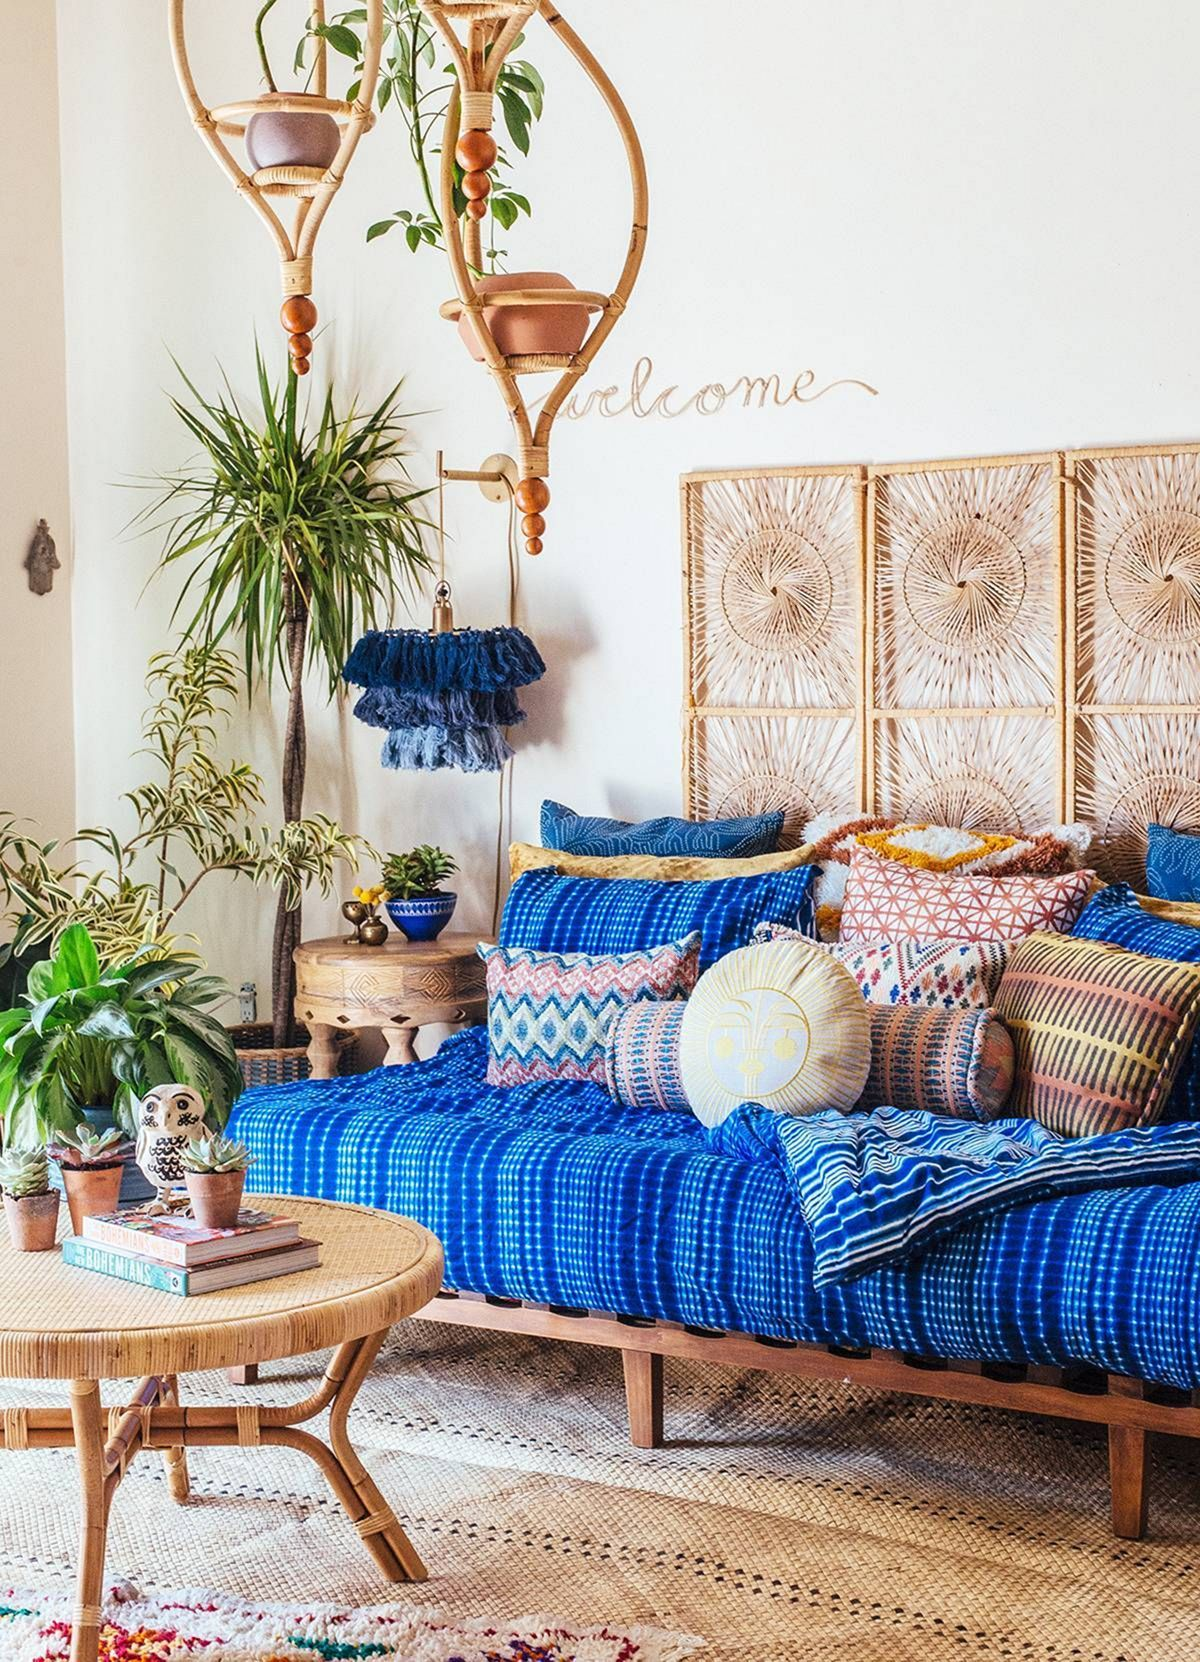 30 best hippie bohemian living room design ideas that can make you happy hippie living room on boho chic decor living room bohemian kitchen id=31190